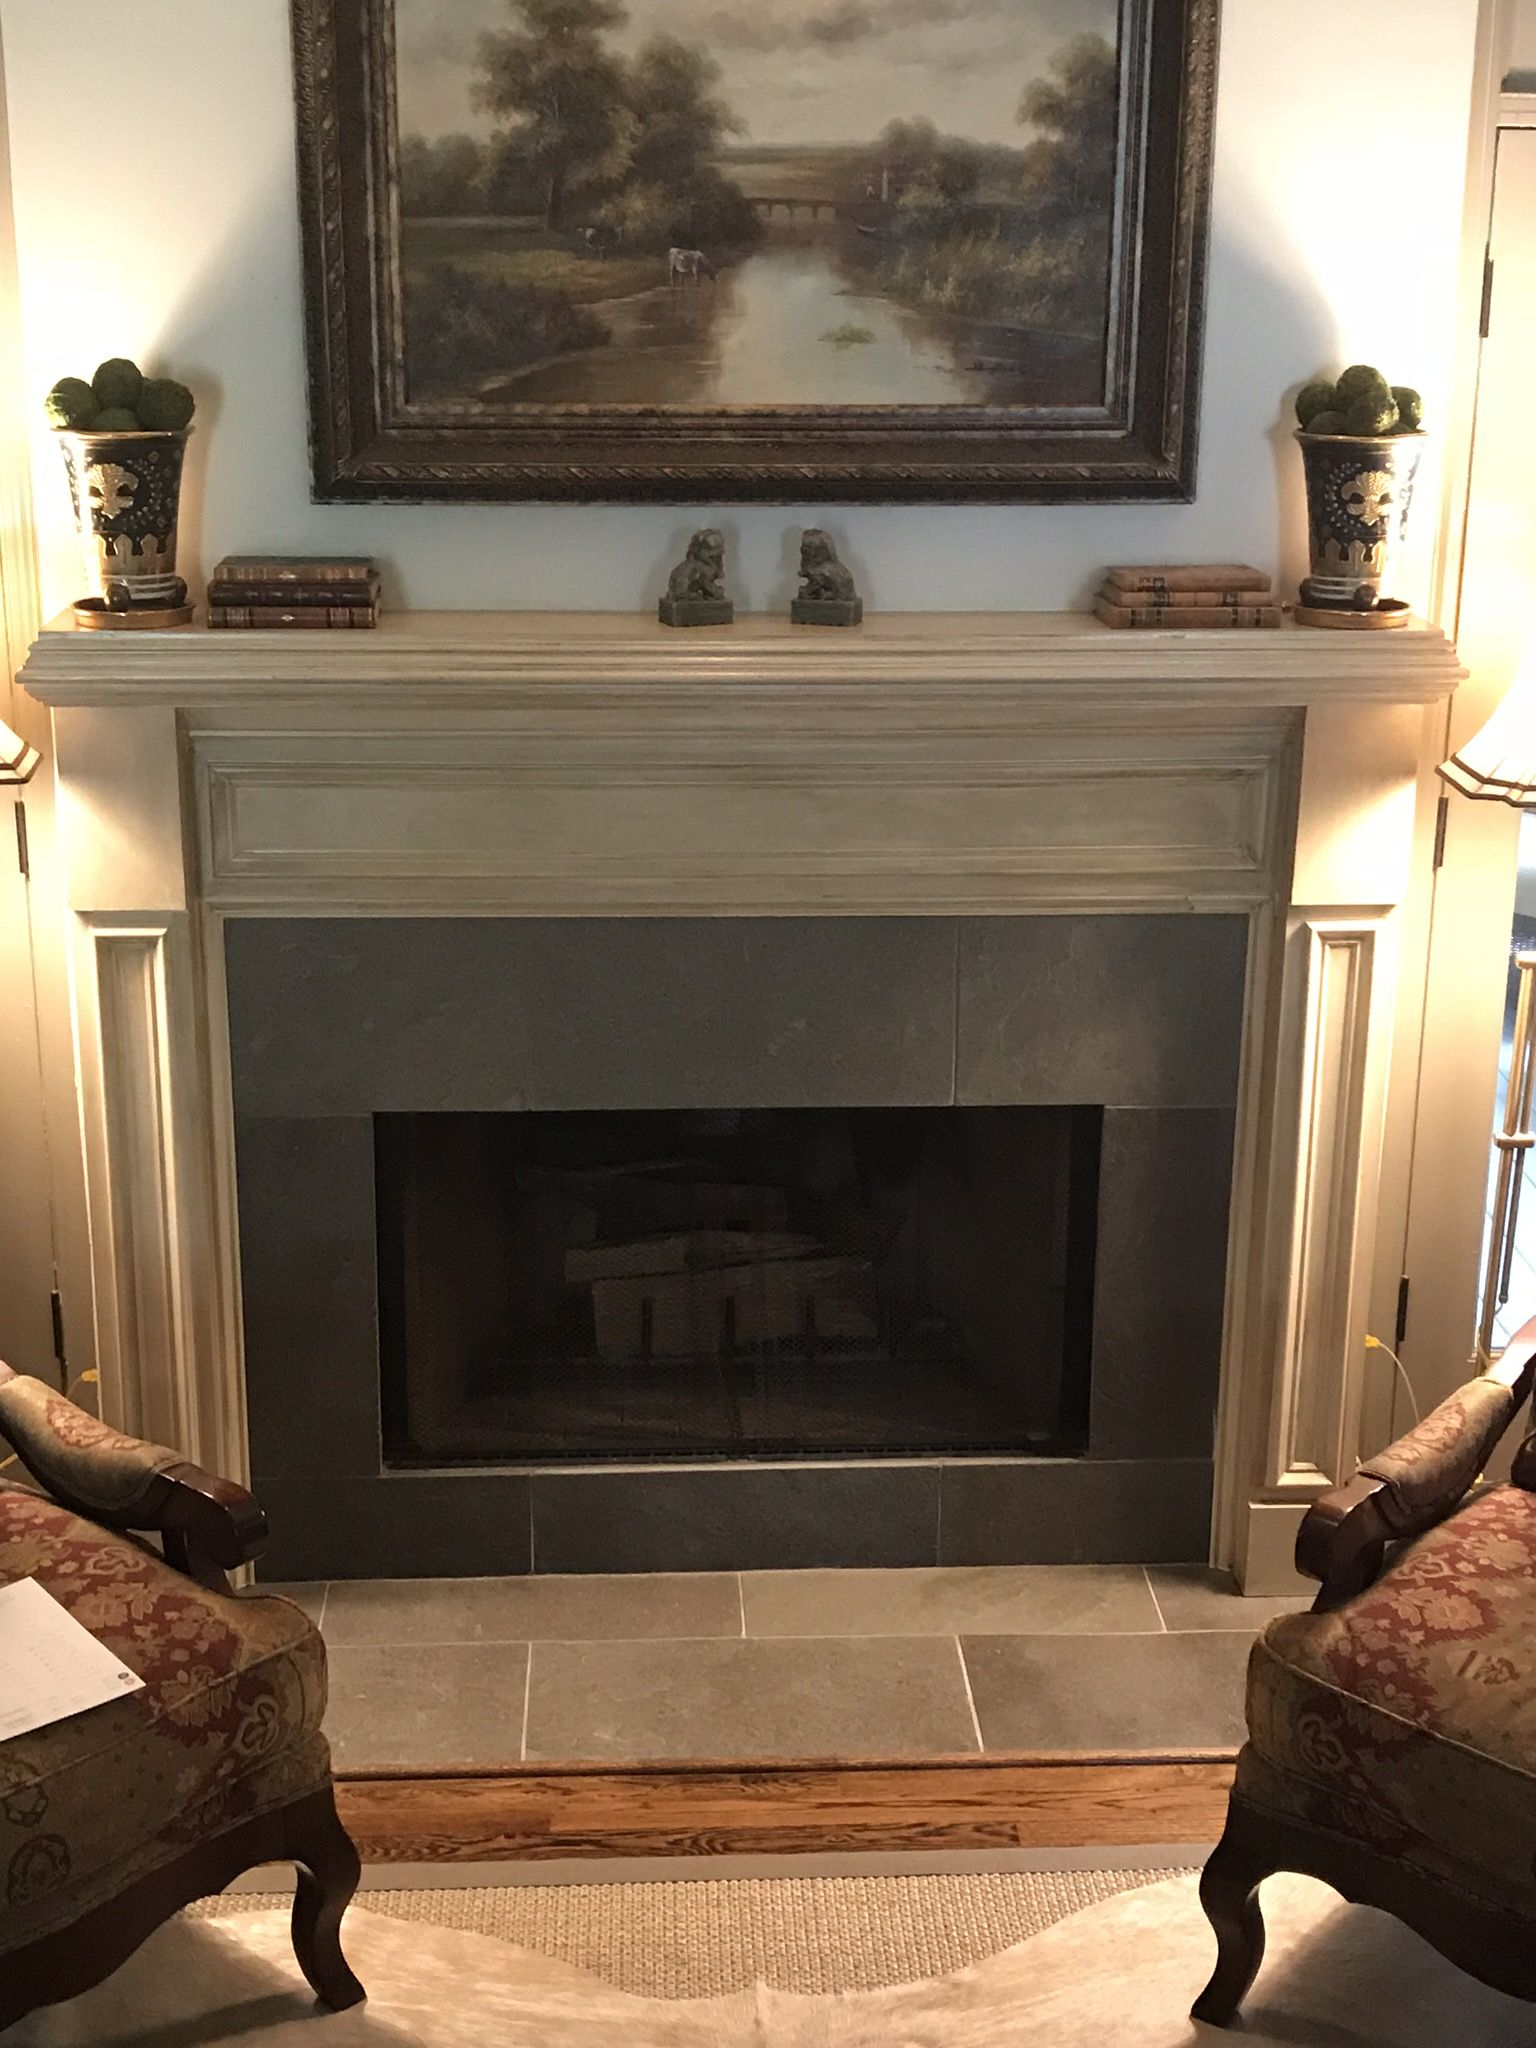 Traditional Fireplace Design With Classic Wooden Surround And Tile